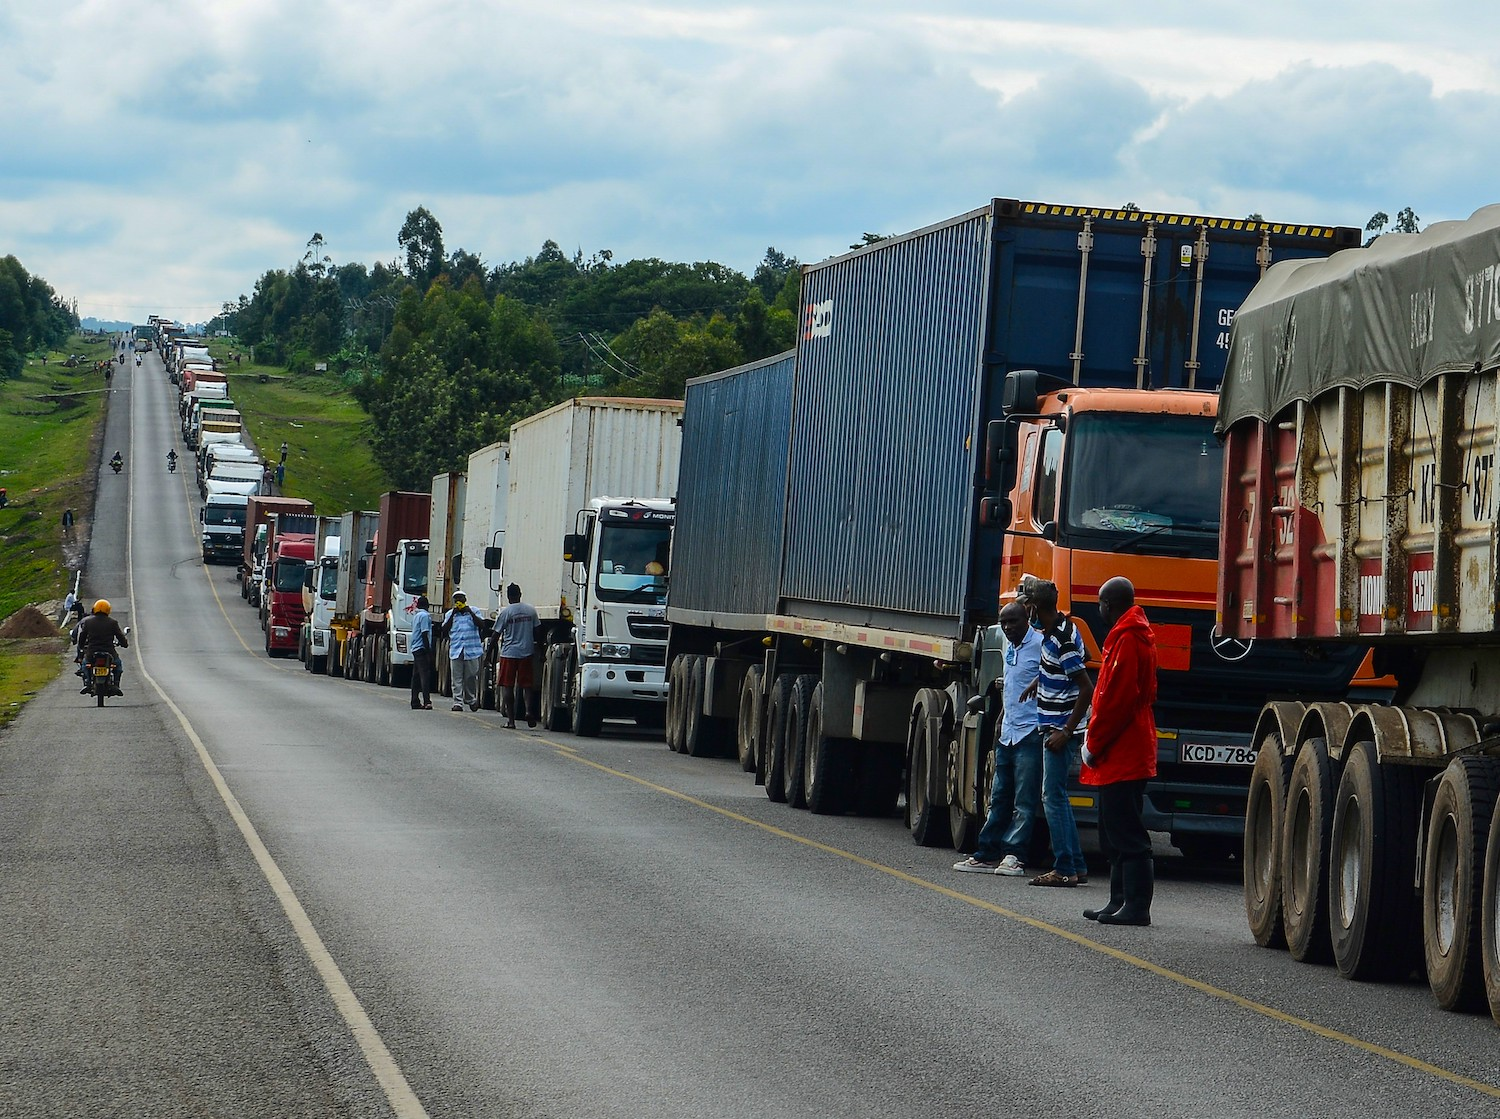 Trucks wait in a line on the road to enter Uganda in Malaba, a city bordering with Uganda, western Kenya, on April 29, 2020.